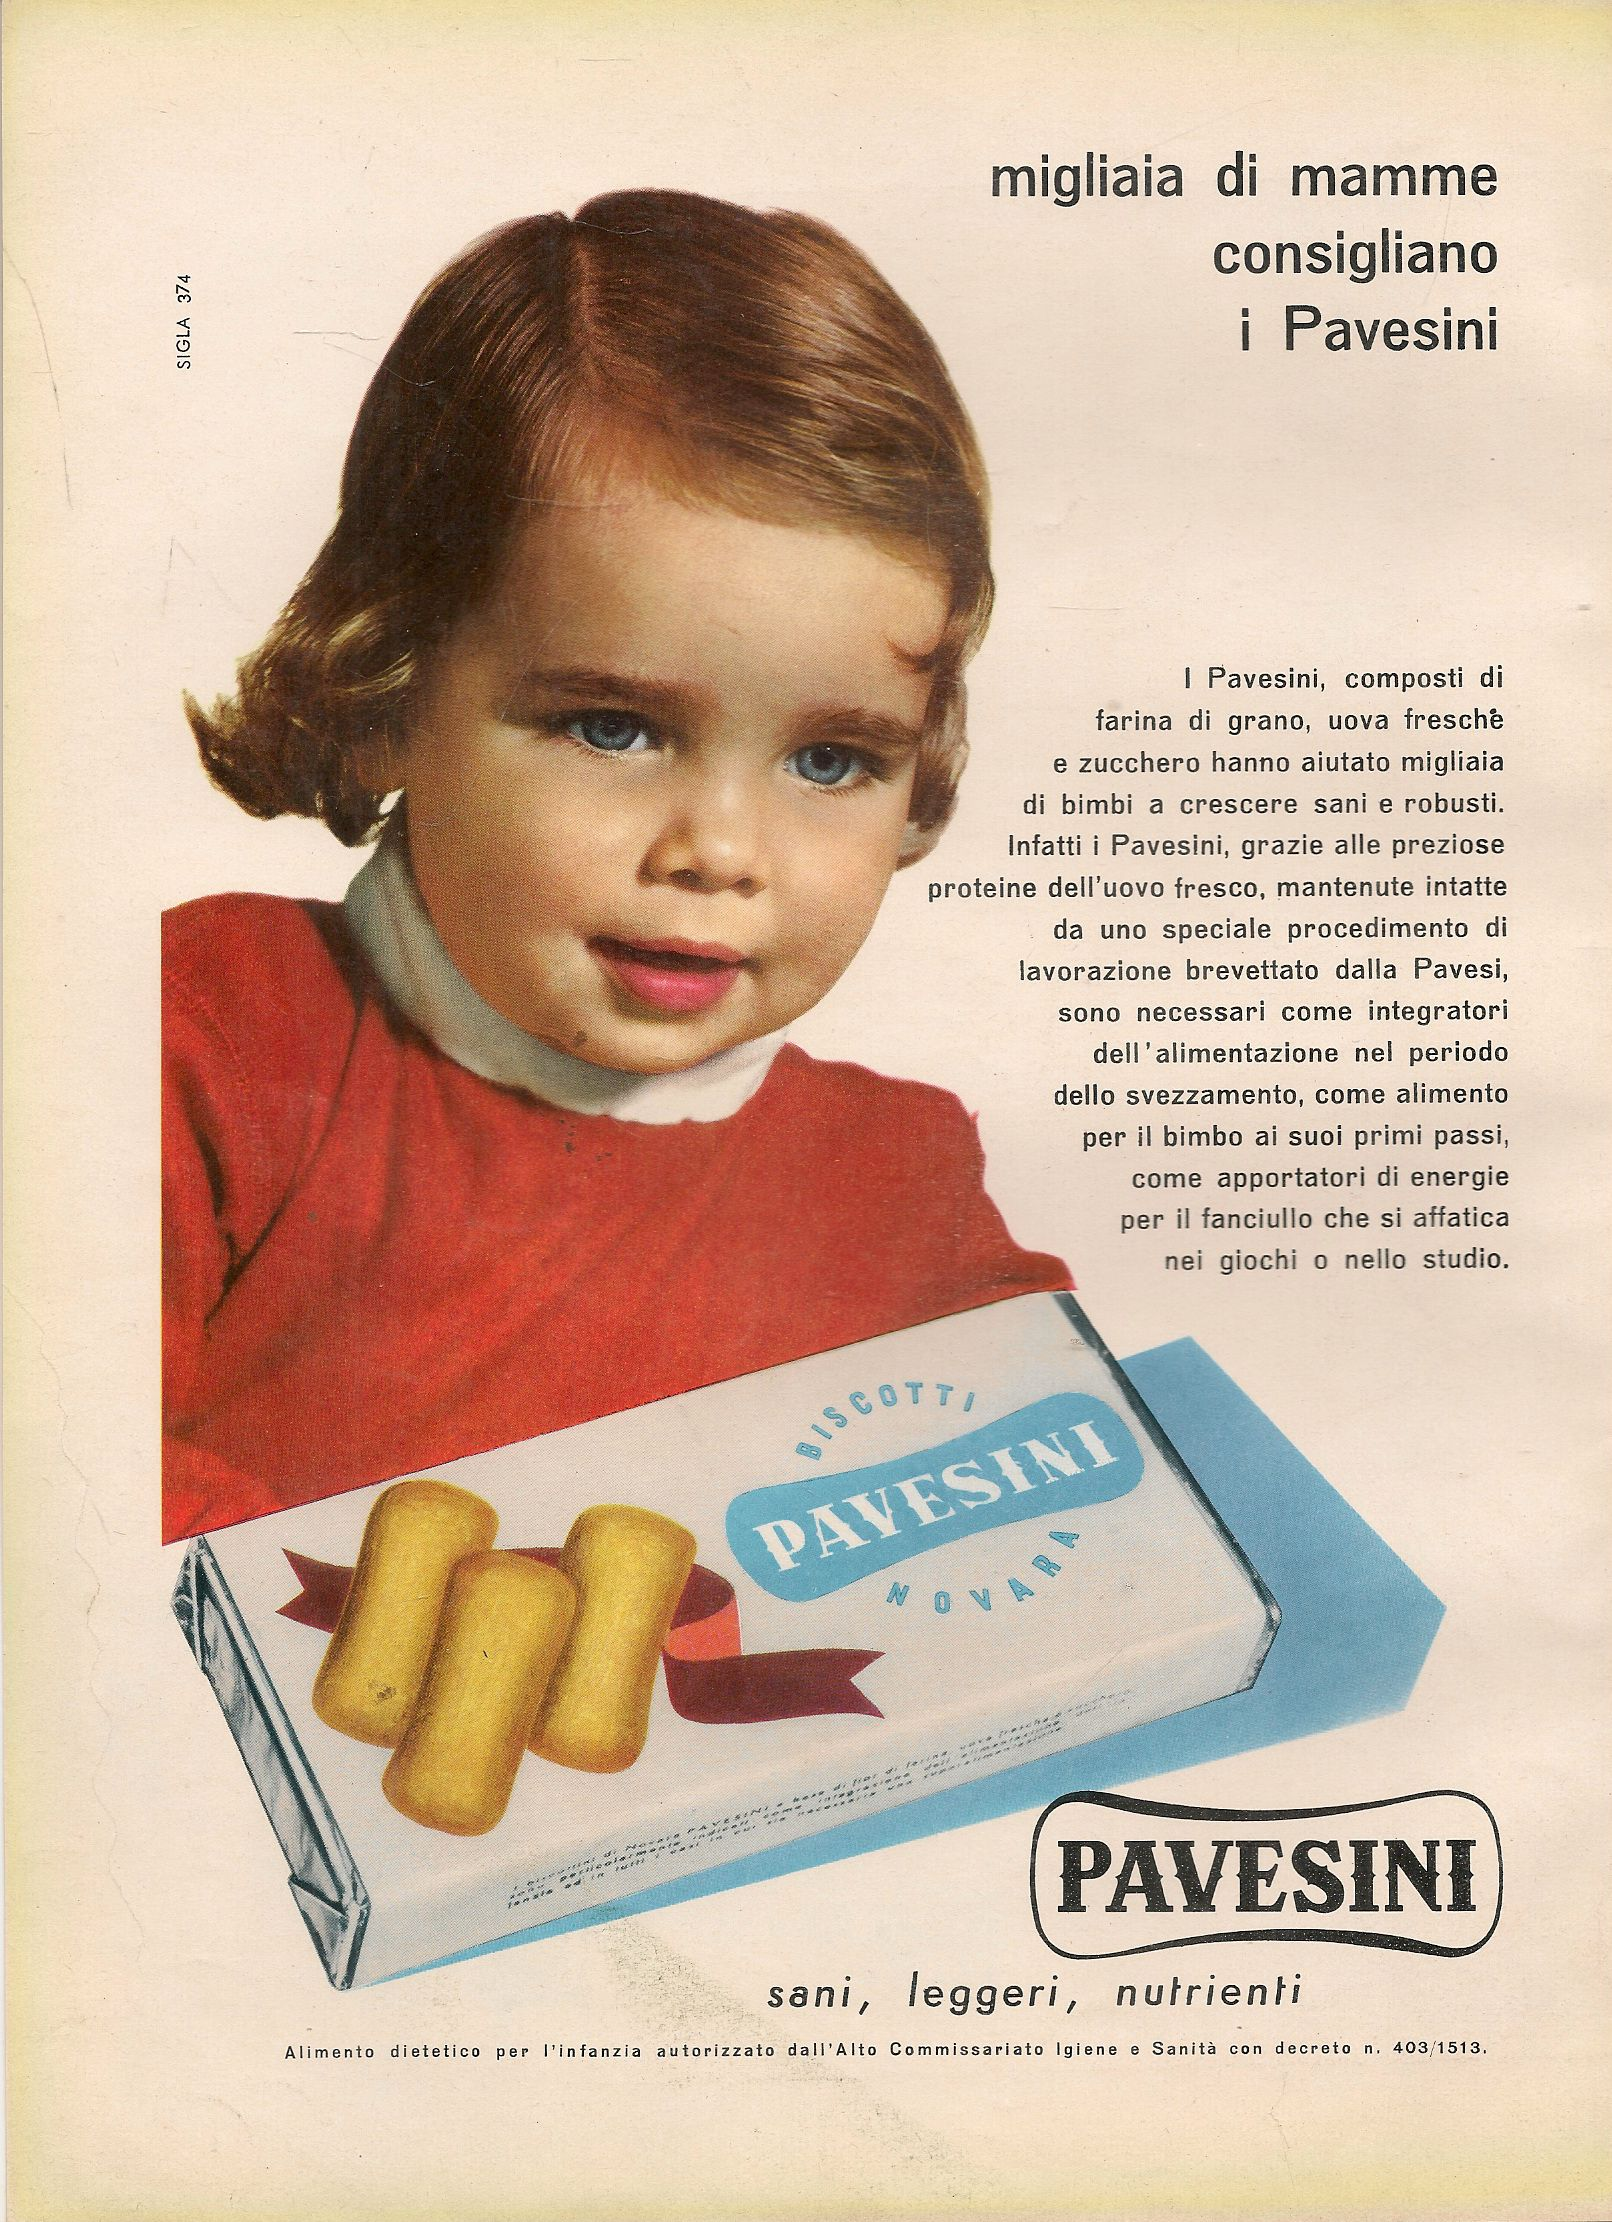 PAVESINI. SANI LEGGERI NUTRIENTI - ADVERTISING